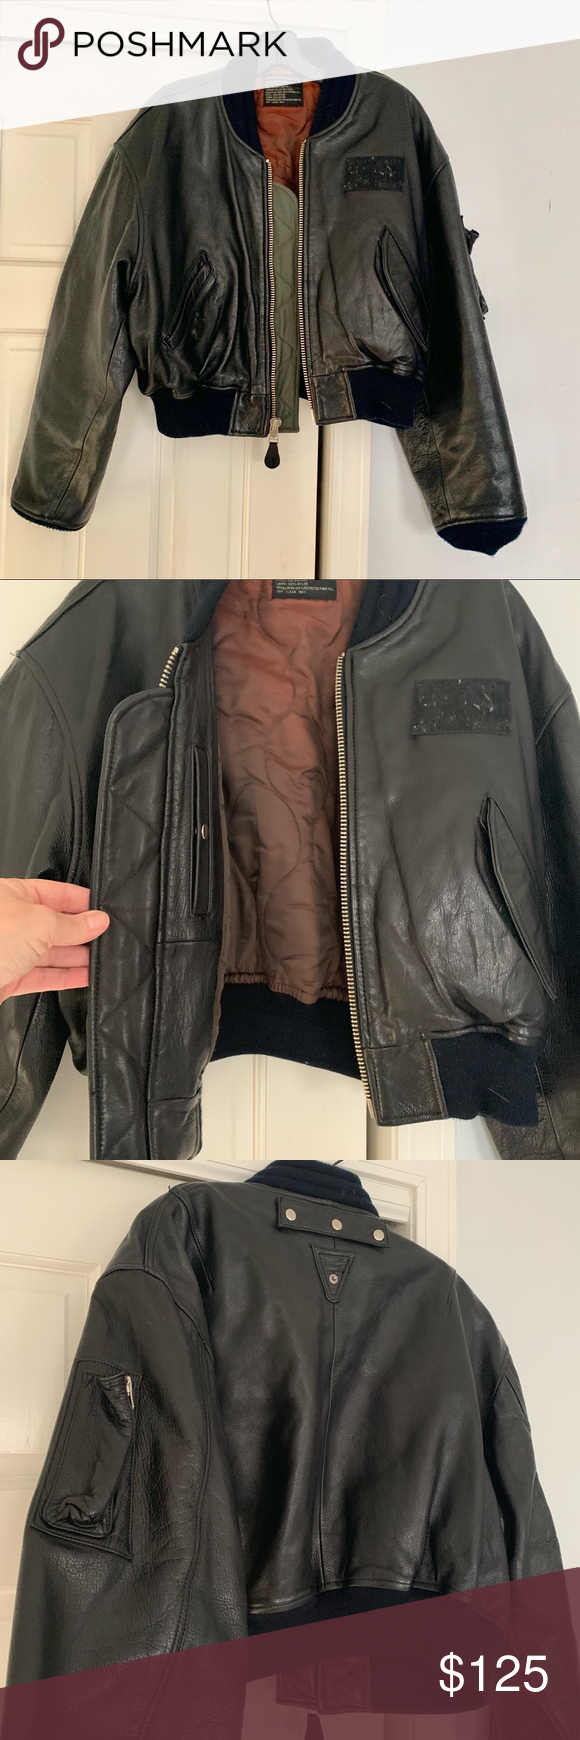 Vintage authentic Avirex Leather flight jacket Cropped